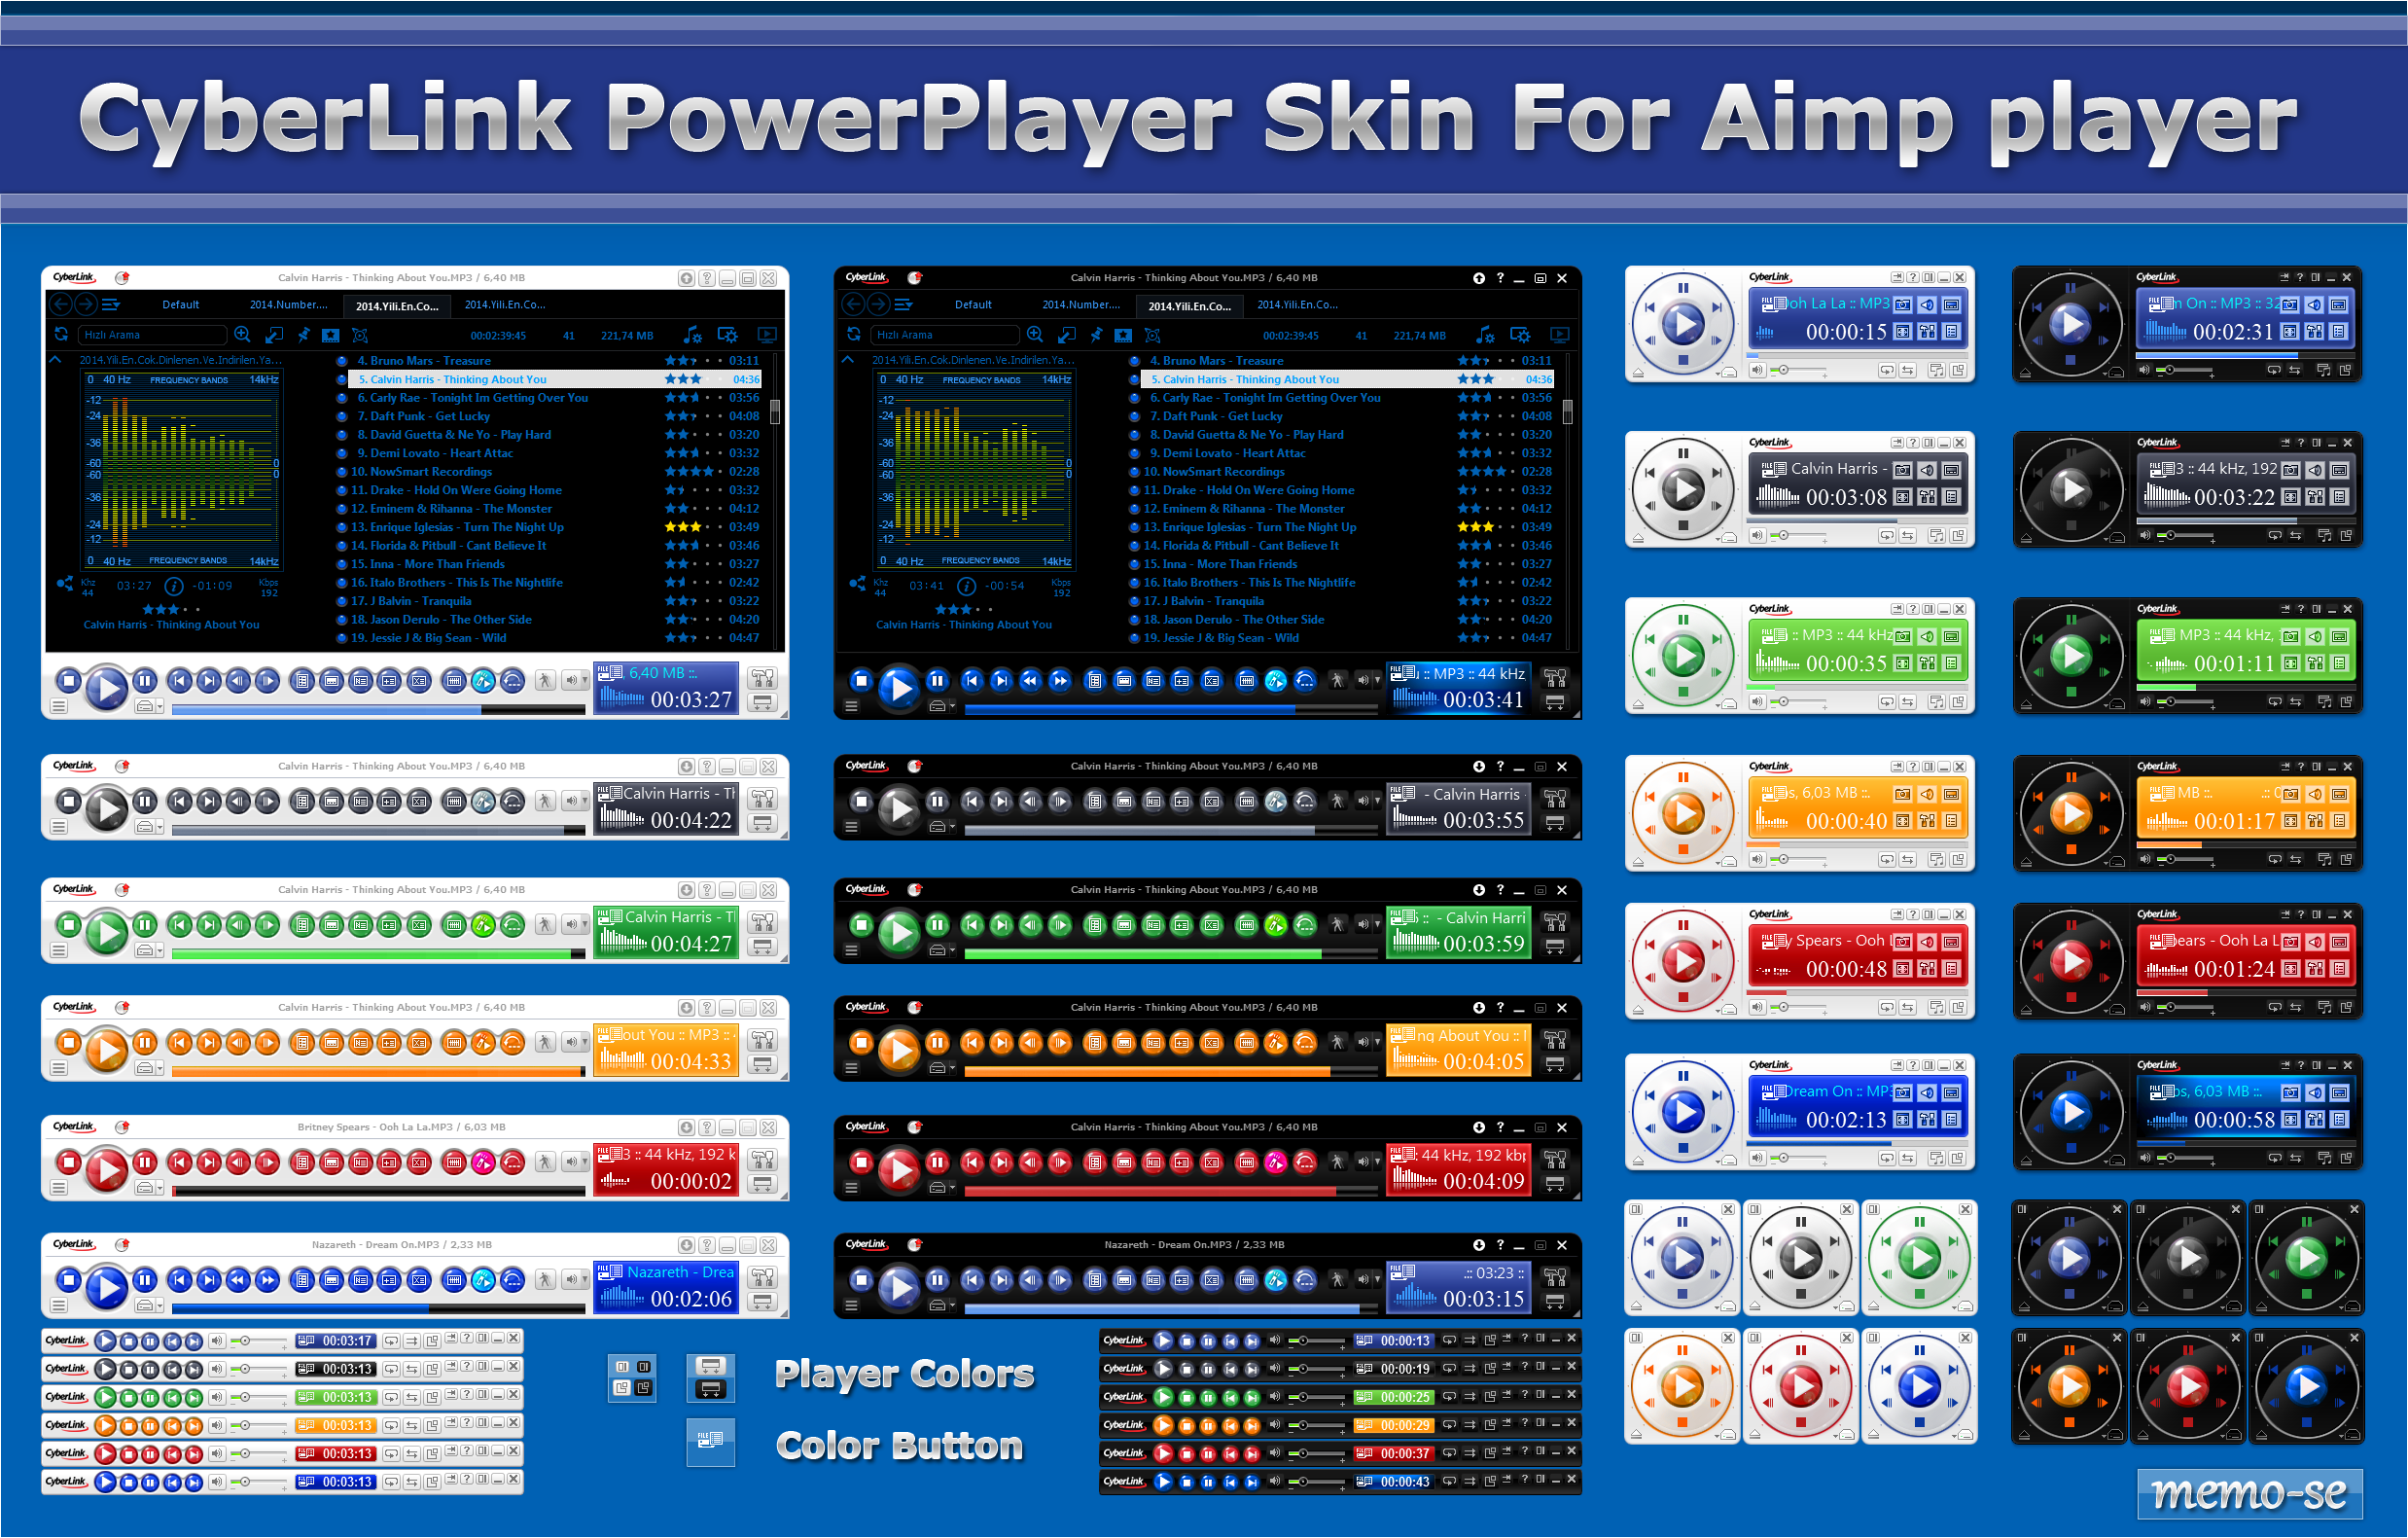 CyberLink PowerPlayer Skin For Aimp Player